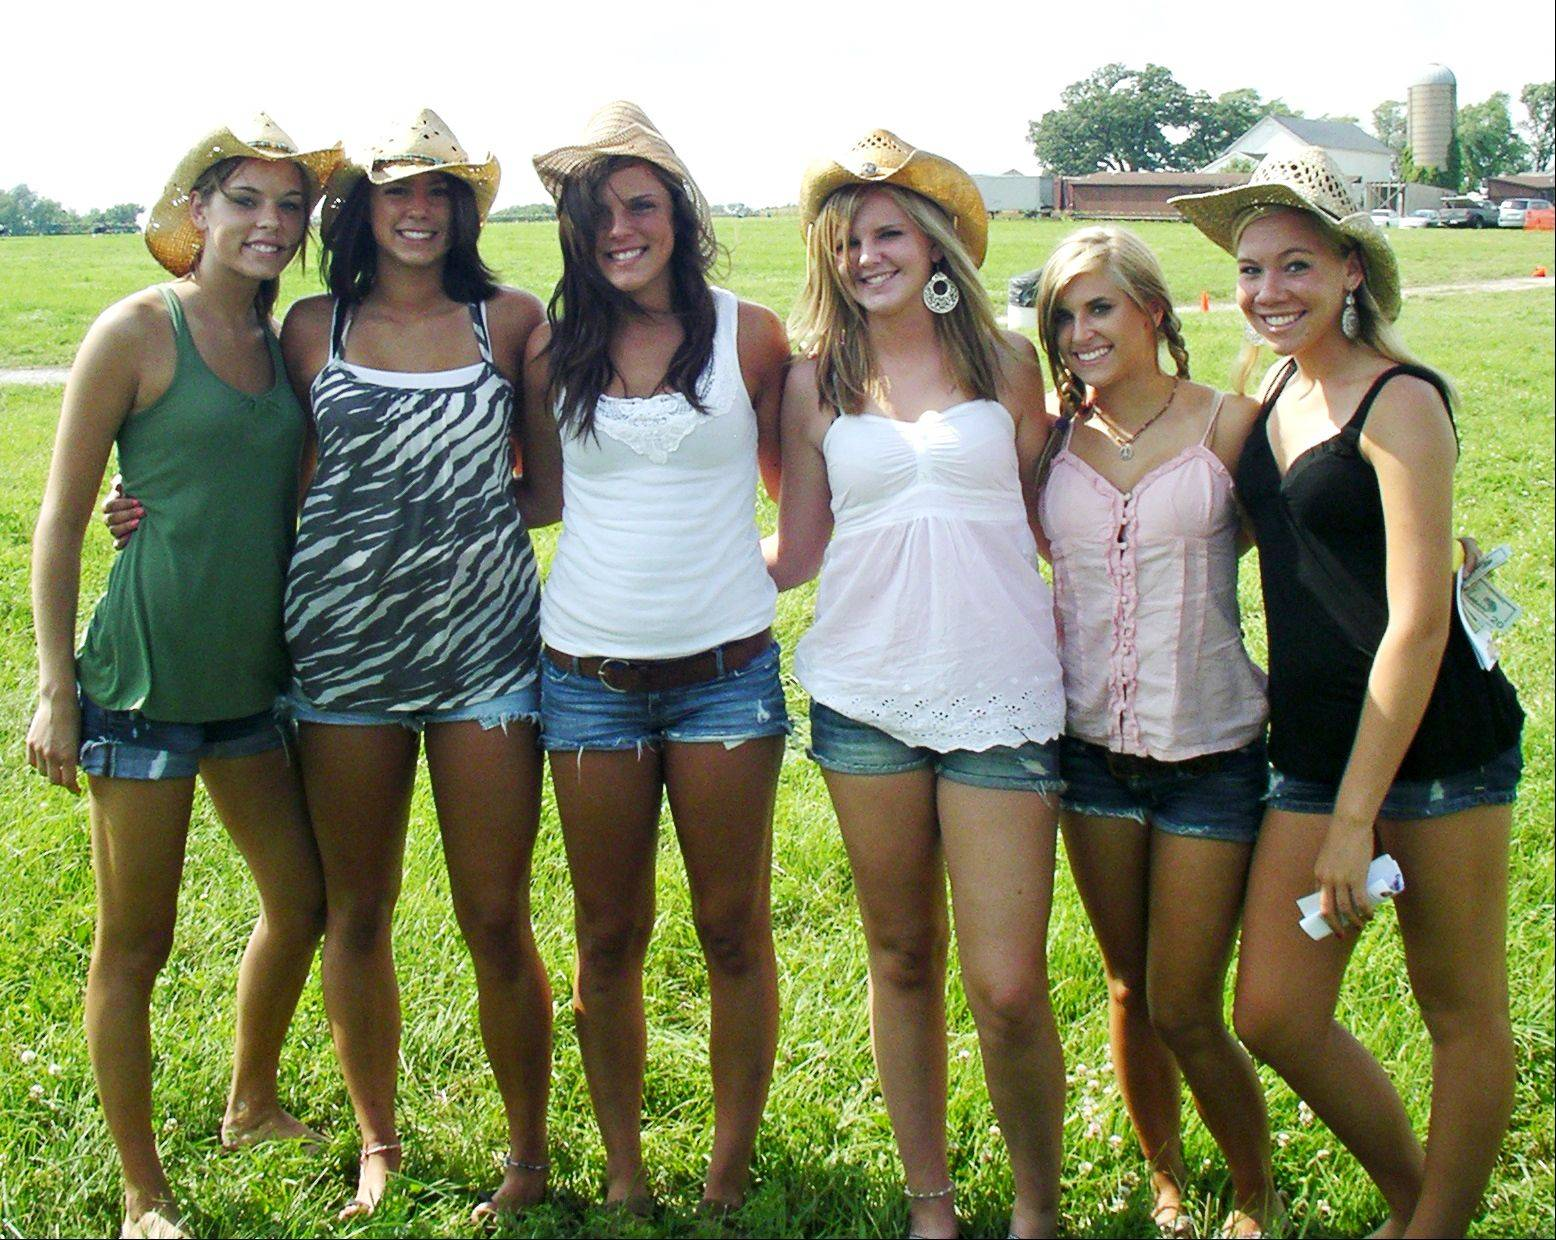 In this group photo, Emma Mebane of Geneva is third from the right, and the picture was taken before the group went to a Country Thunder concert in 2009. Emma died in her sleep July 8, 2011, at age 19. Her family is hosting a mini-golf event next week in her memory.